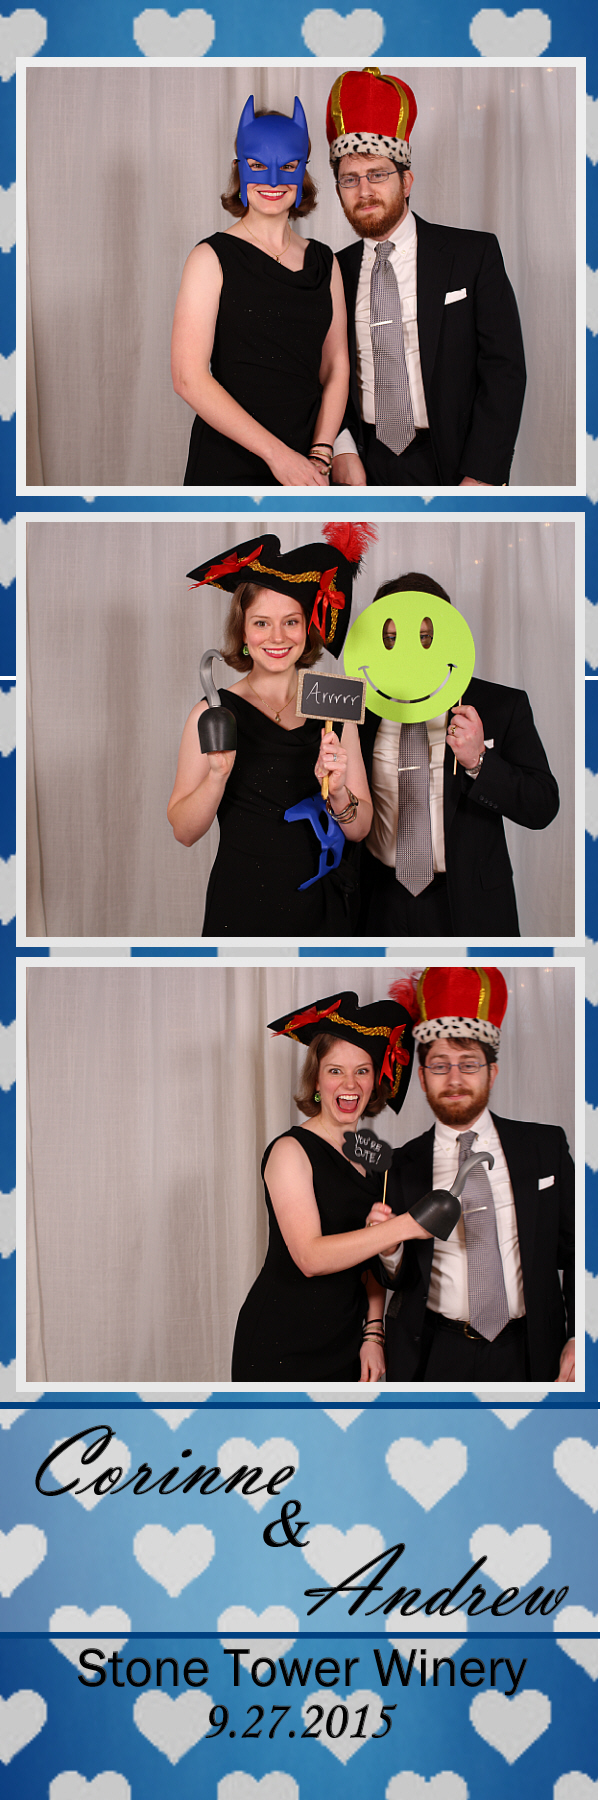 Guest House Events Photo Booth C&A (6).jpg